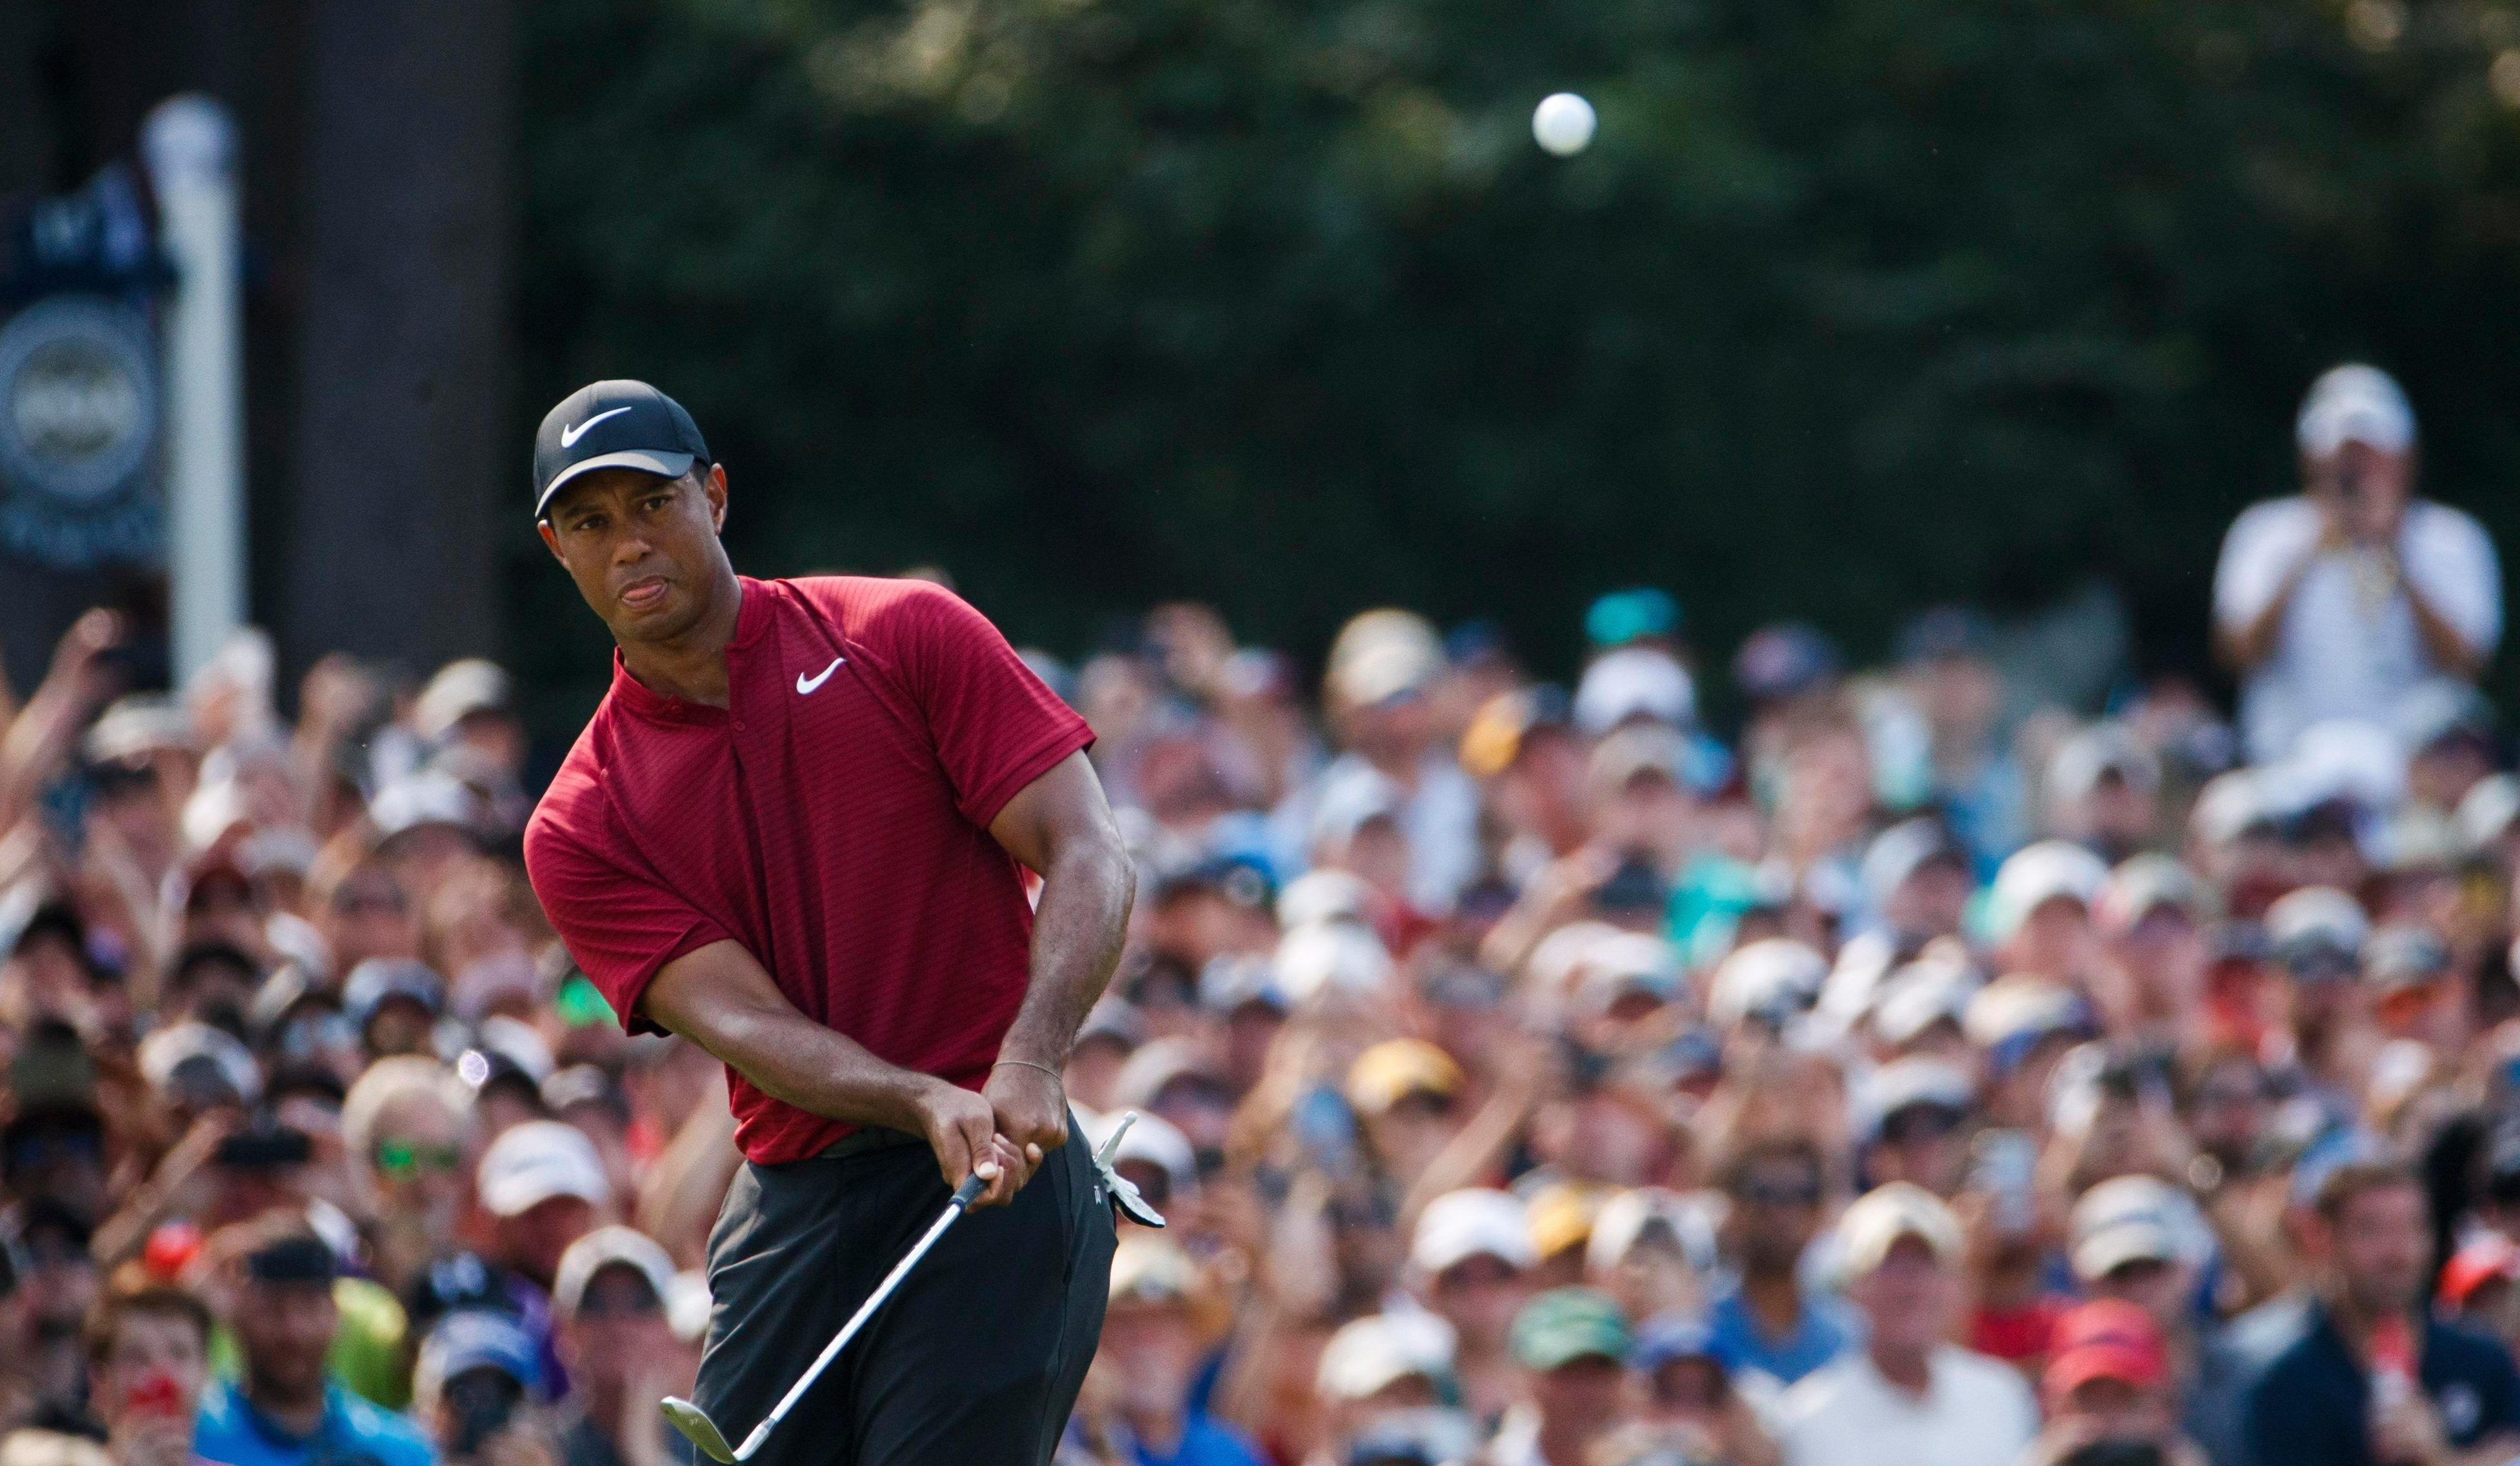 Nick Faldo has high expectations for 14-time Major winner Tiger Woods